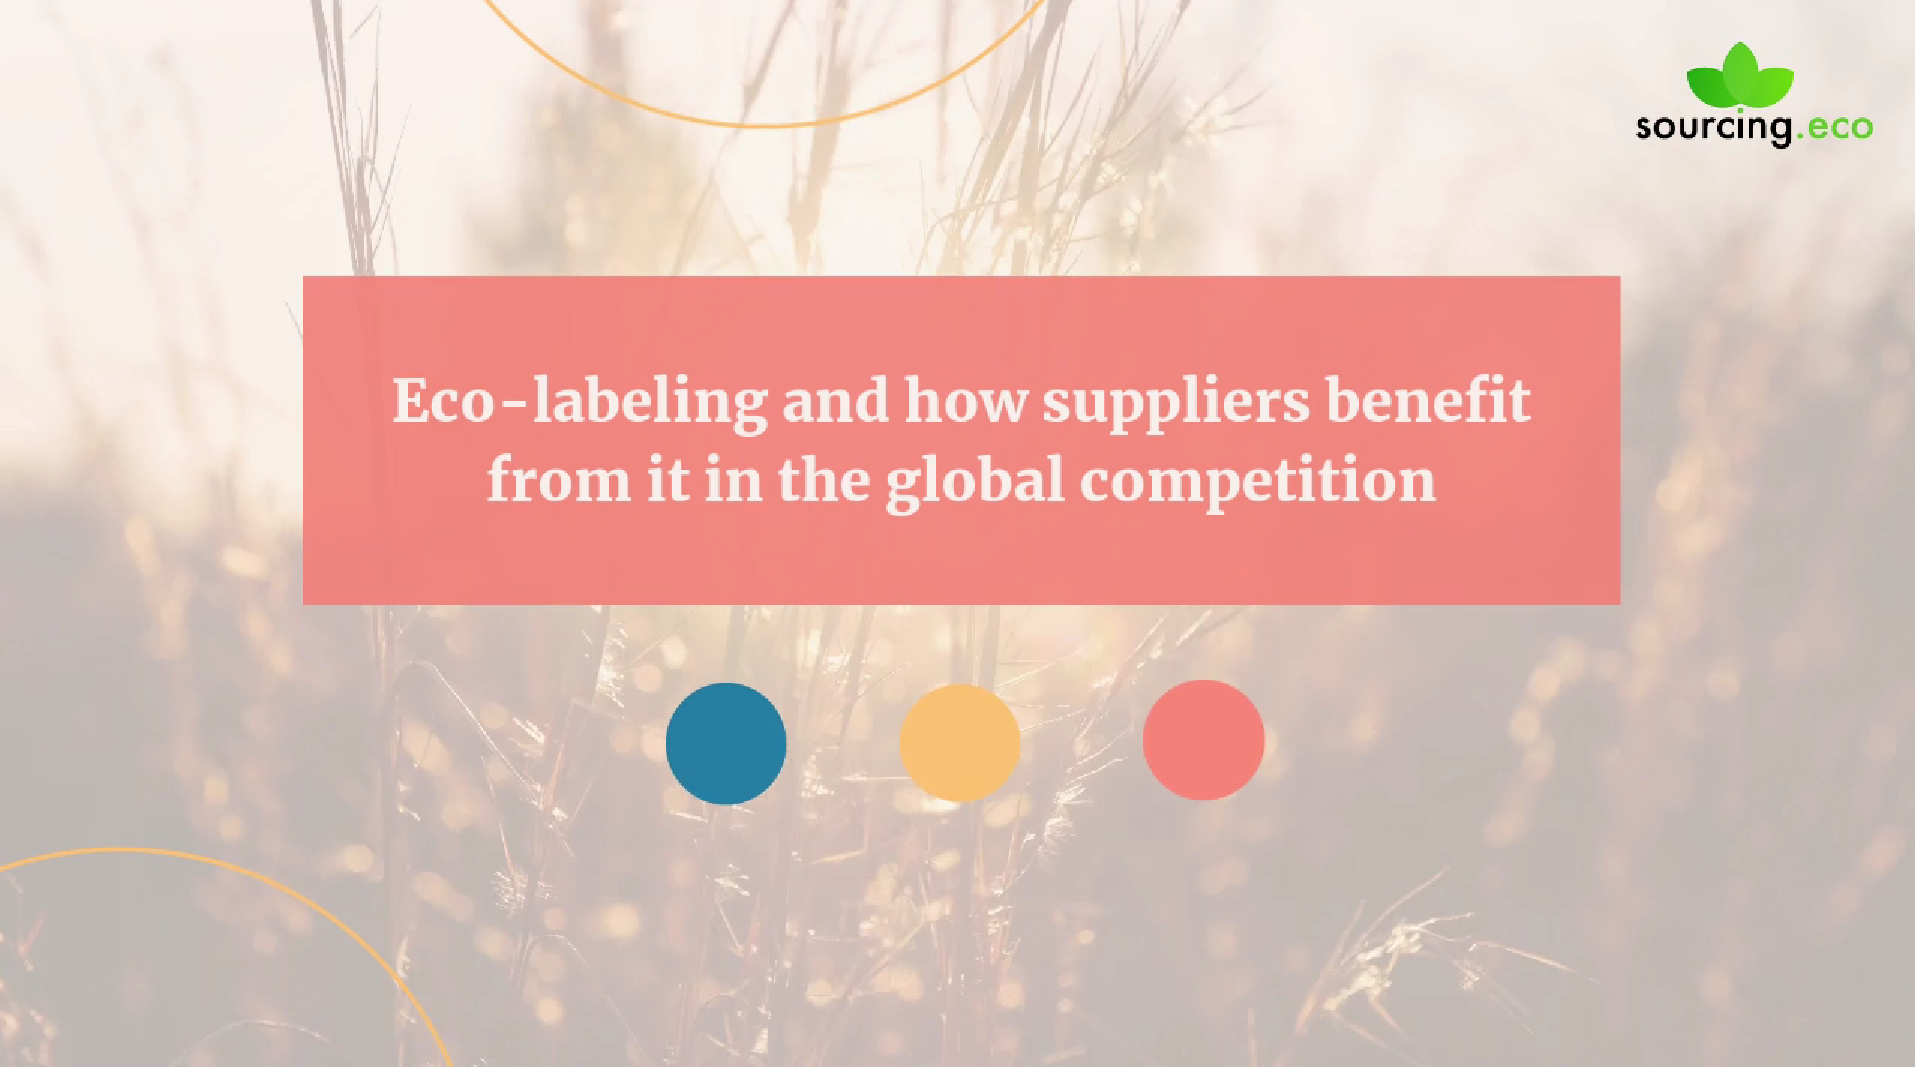 Eco-labeling and how suppliers benefit from it in the global competition